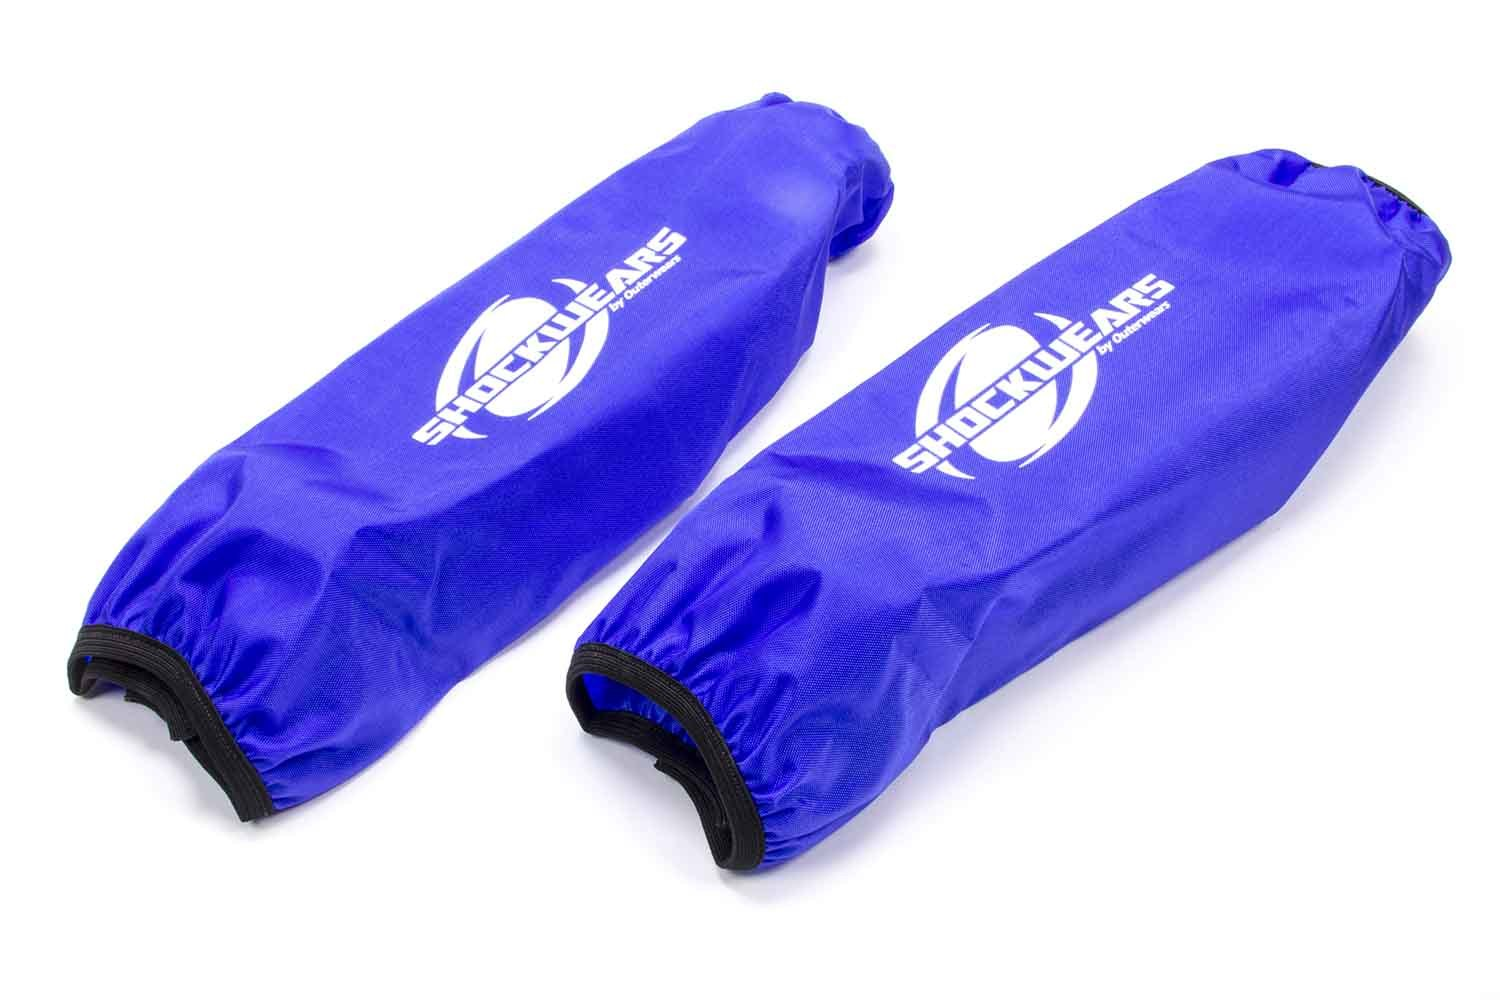 Outerwears 30-2615-02 Shock Cover, Shockwears, 13 in Long, 5.000 in OD, Elastic Ends, Hook and Loop Closure, Polyester, Blue, Pair